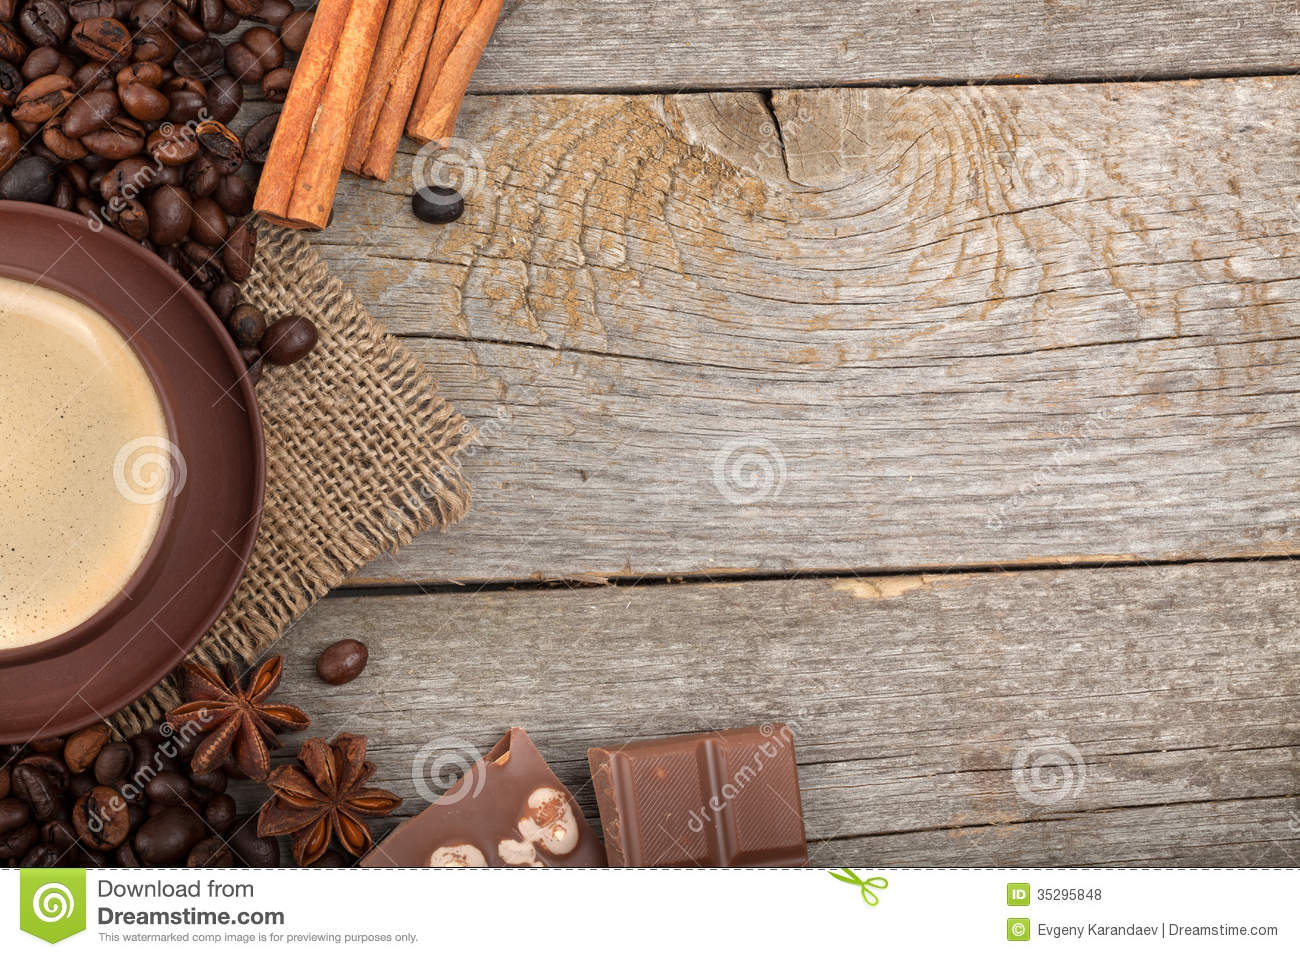 Marvelous photograph of Coffee Cup With Spices And Chocolate On Wooden Table Texture Royalty  with #86AA21 color and 1300x957 pixels